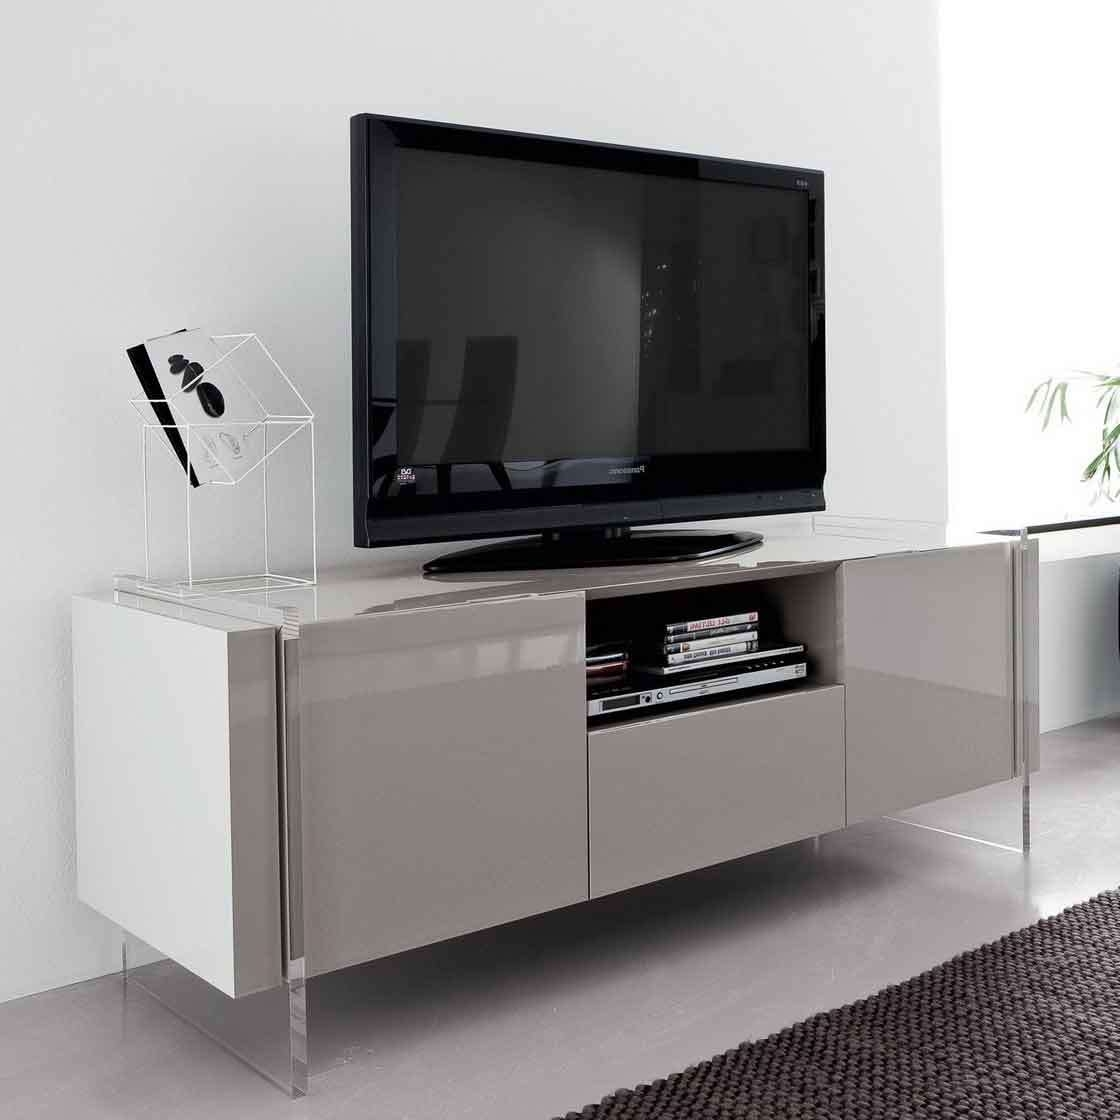 Innovative Tv Stand For Home Entertainment Room With Three Pertaining To Acrylic Tv Stands (View 7 of 15)